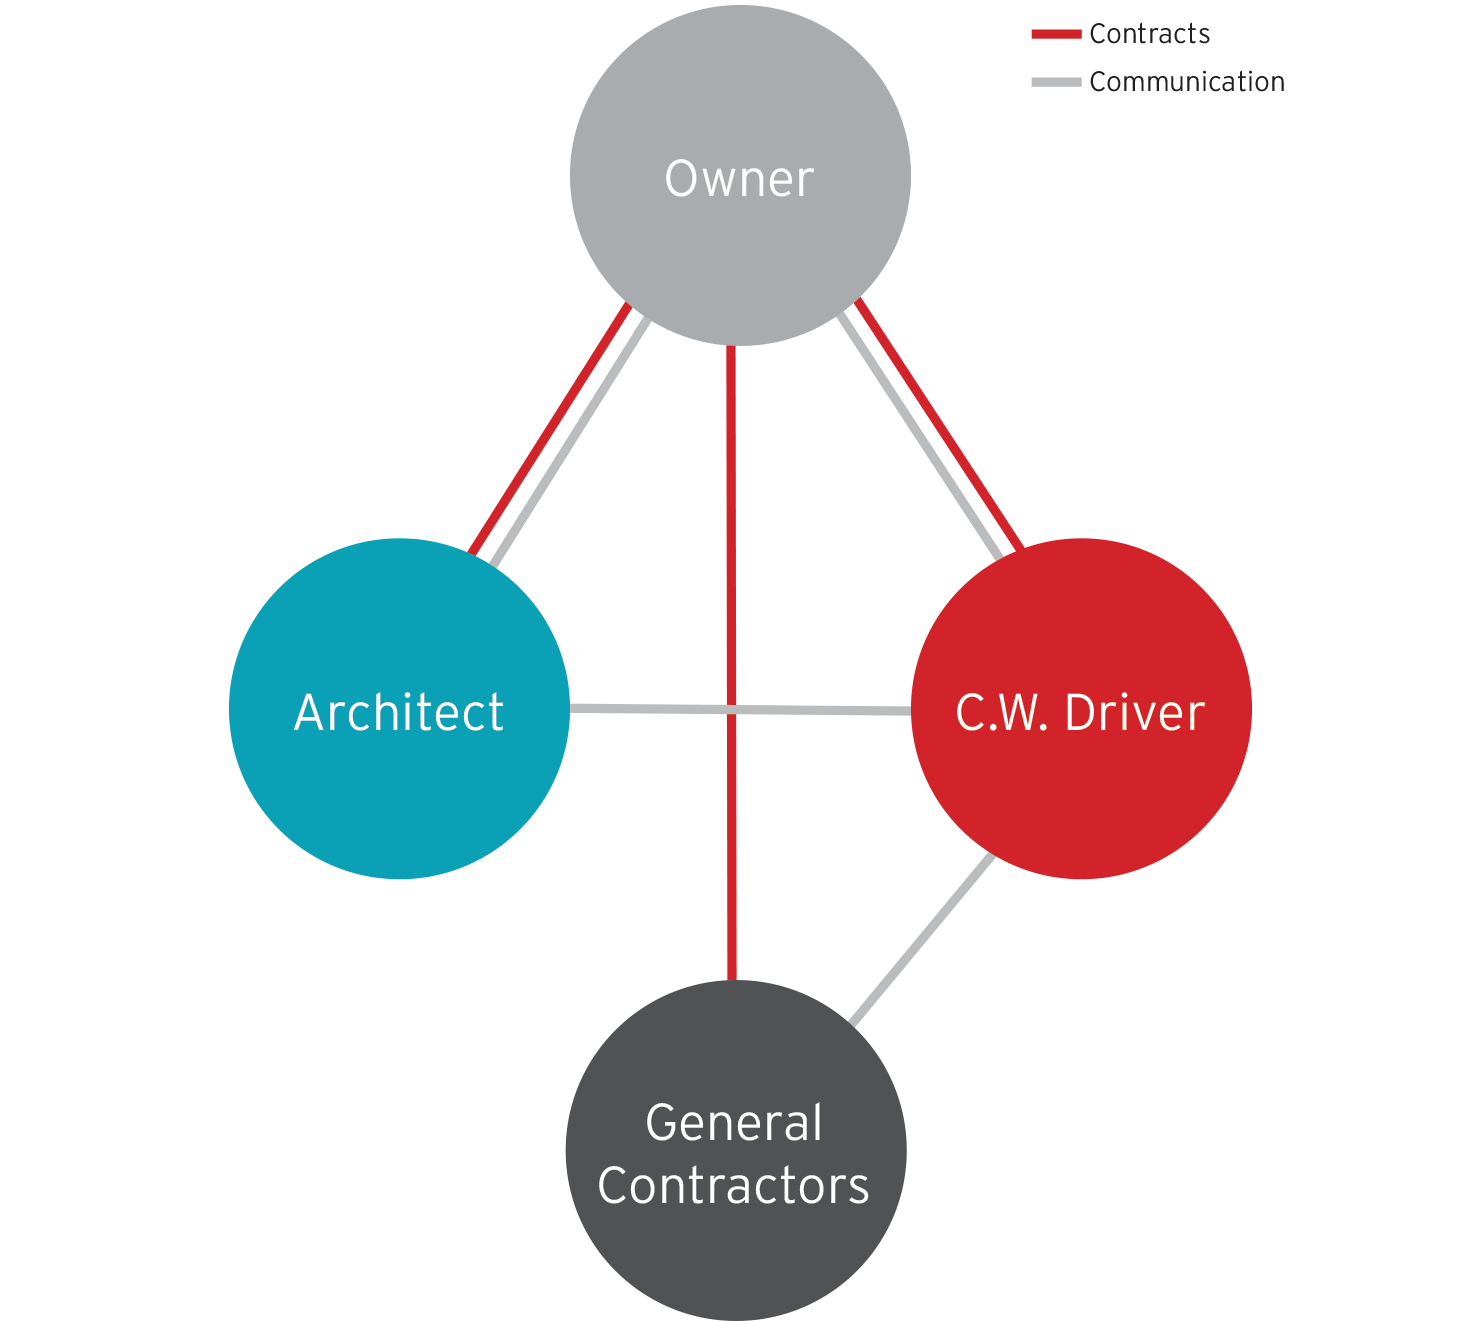 Services Cw Driver. Cw Driver Manages The Construction Performed By A General Contractor Procured Through Design Bid Build Process. Wiring. General Construction Diagram At Scoala.co